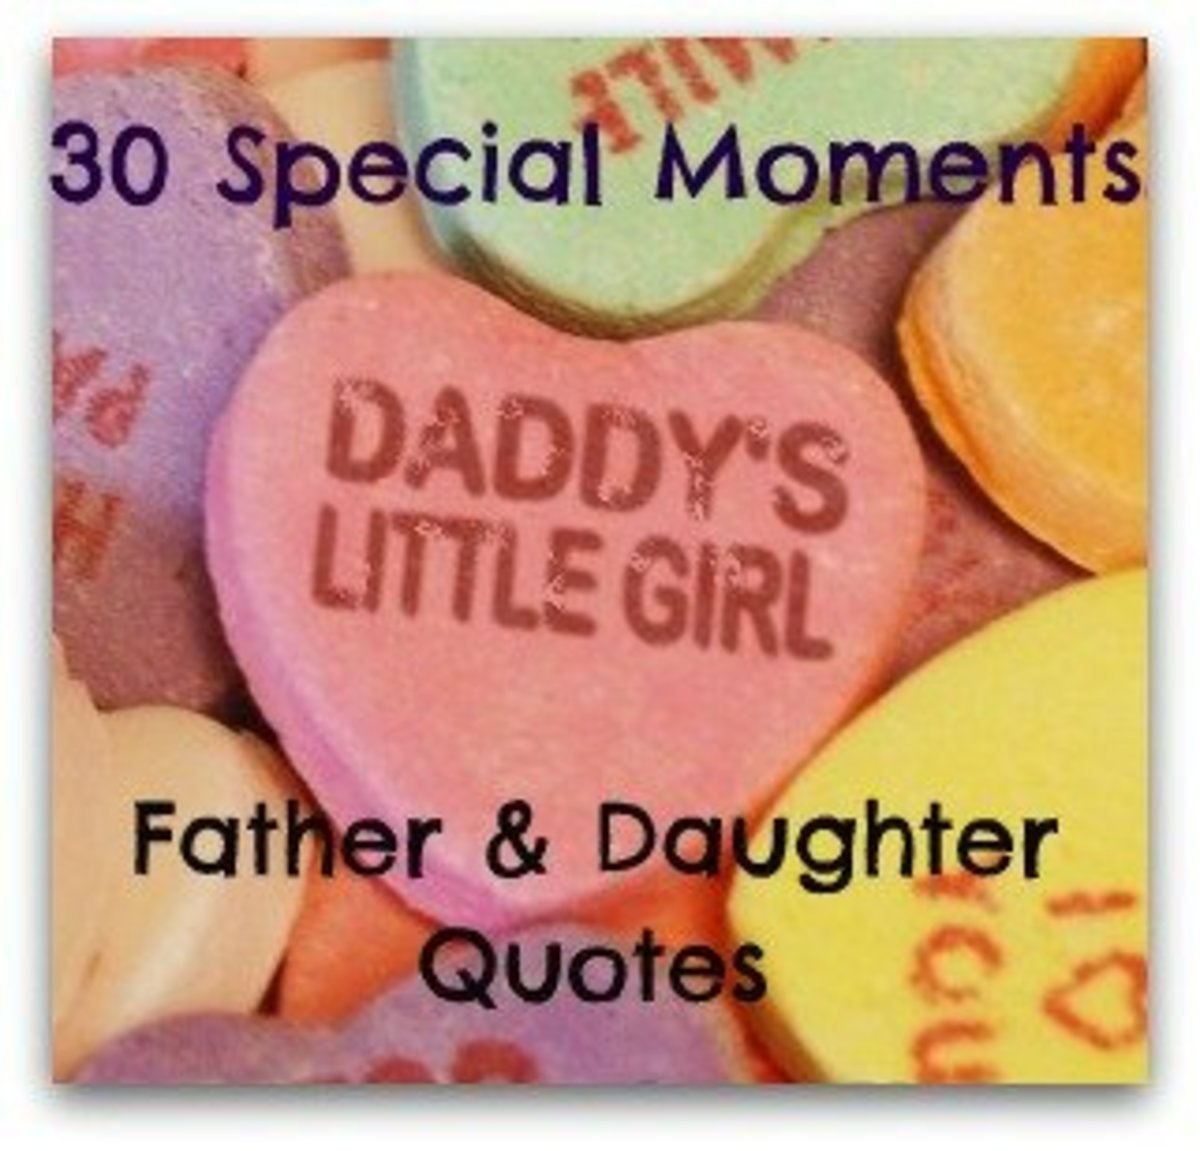 Father-Daughter Advice: Daddy's Little Girl Bonding Moments